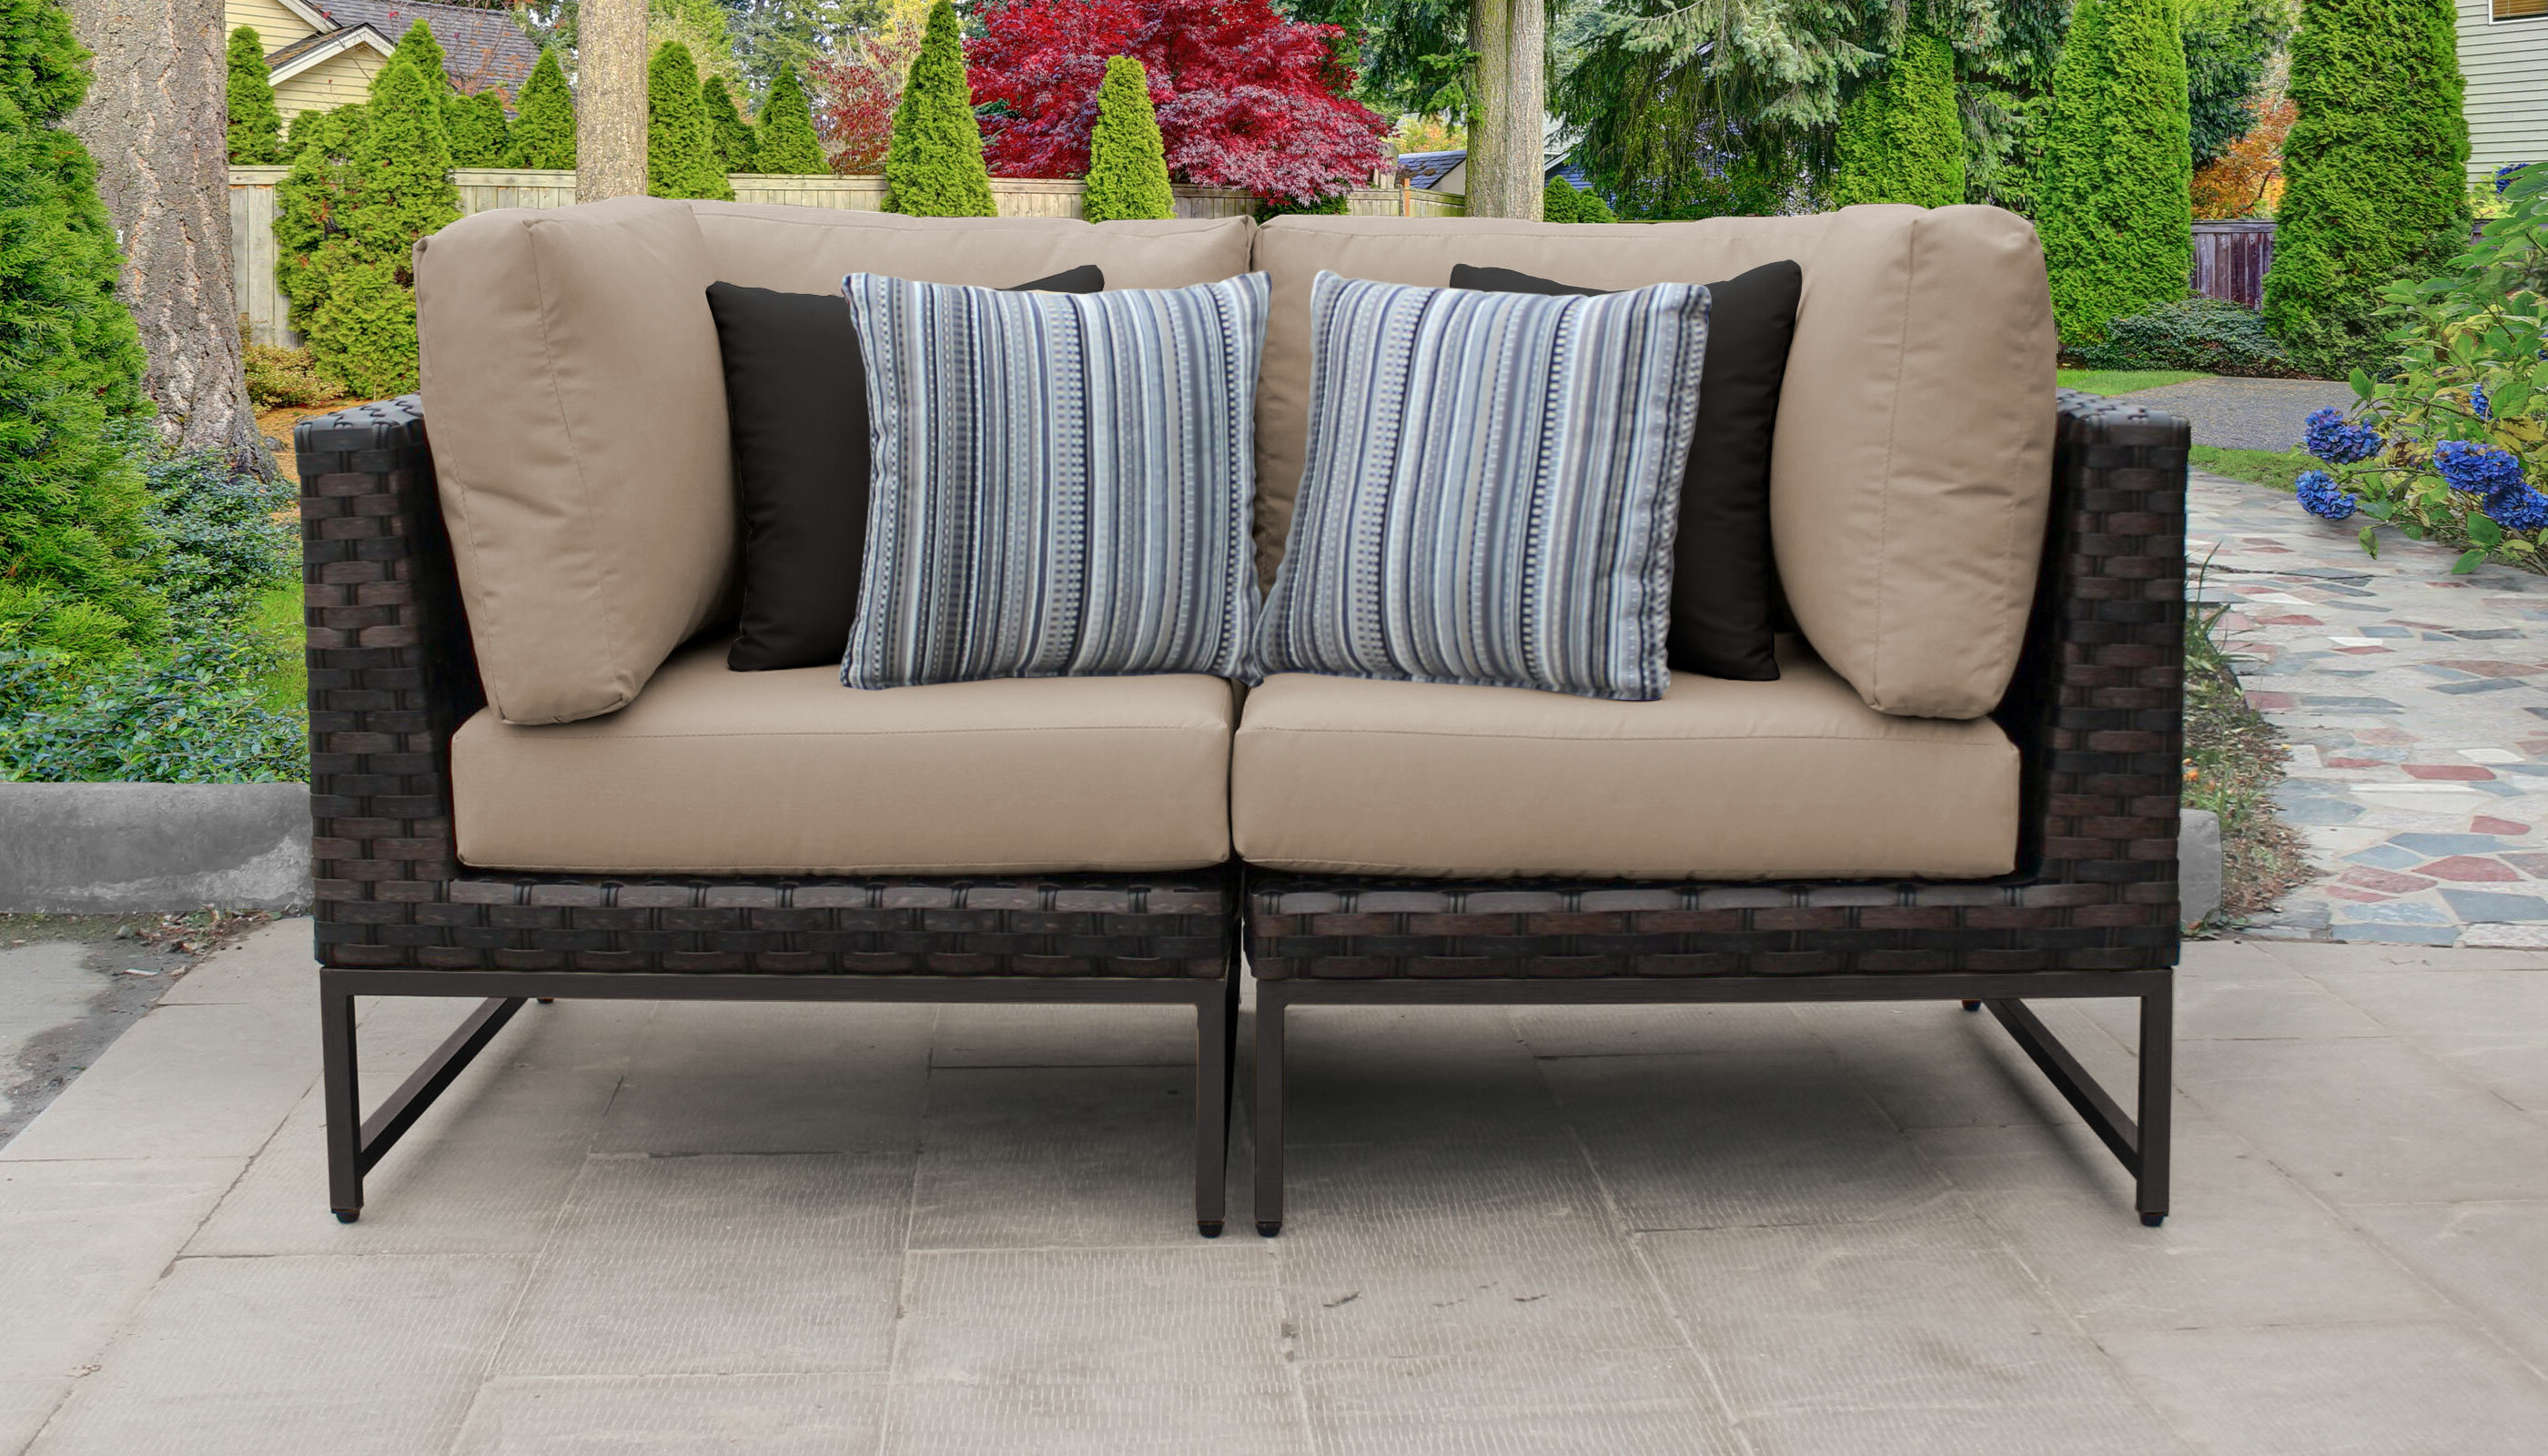 Barcelona Loveseat With Cushions Pertaining To Well Known Pantano Loveseats With Cushions (Gallery 10 of 20)